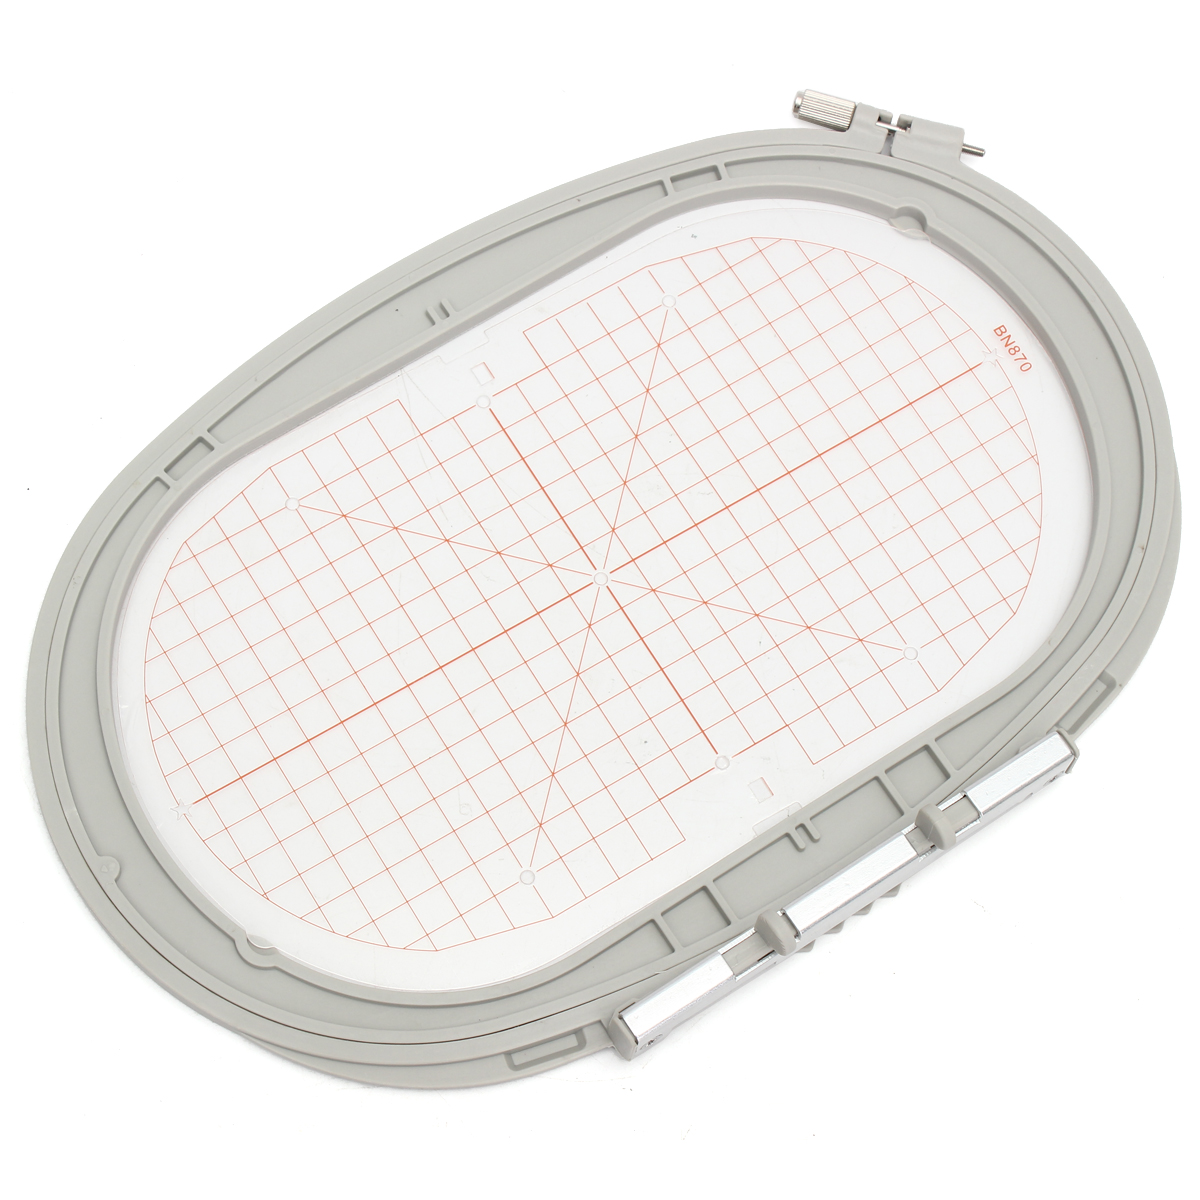 Large oval rectangle embroidery hoop for bernina aurora